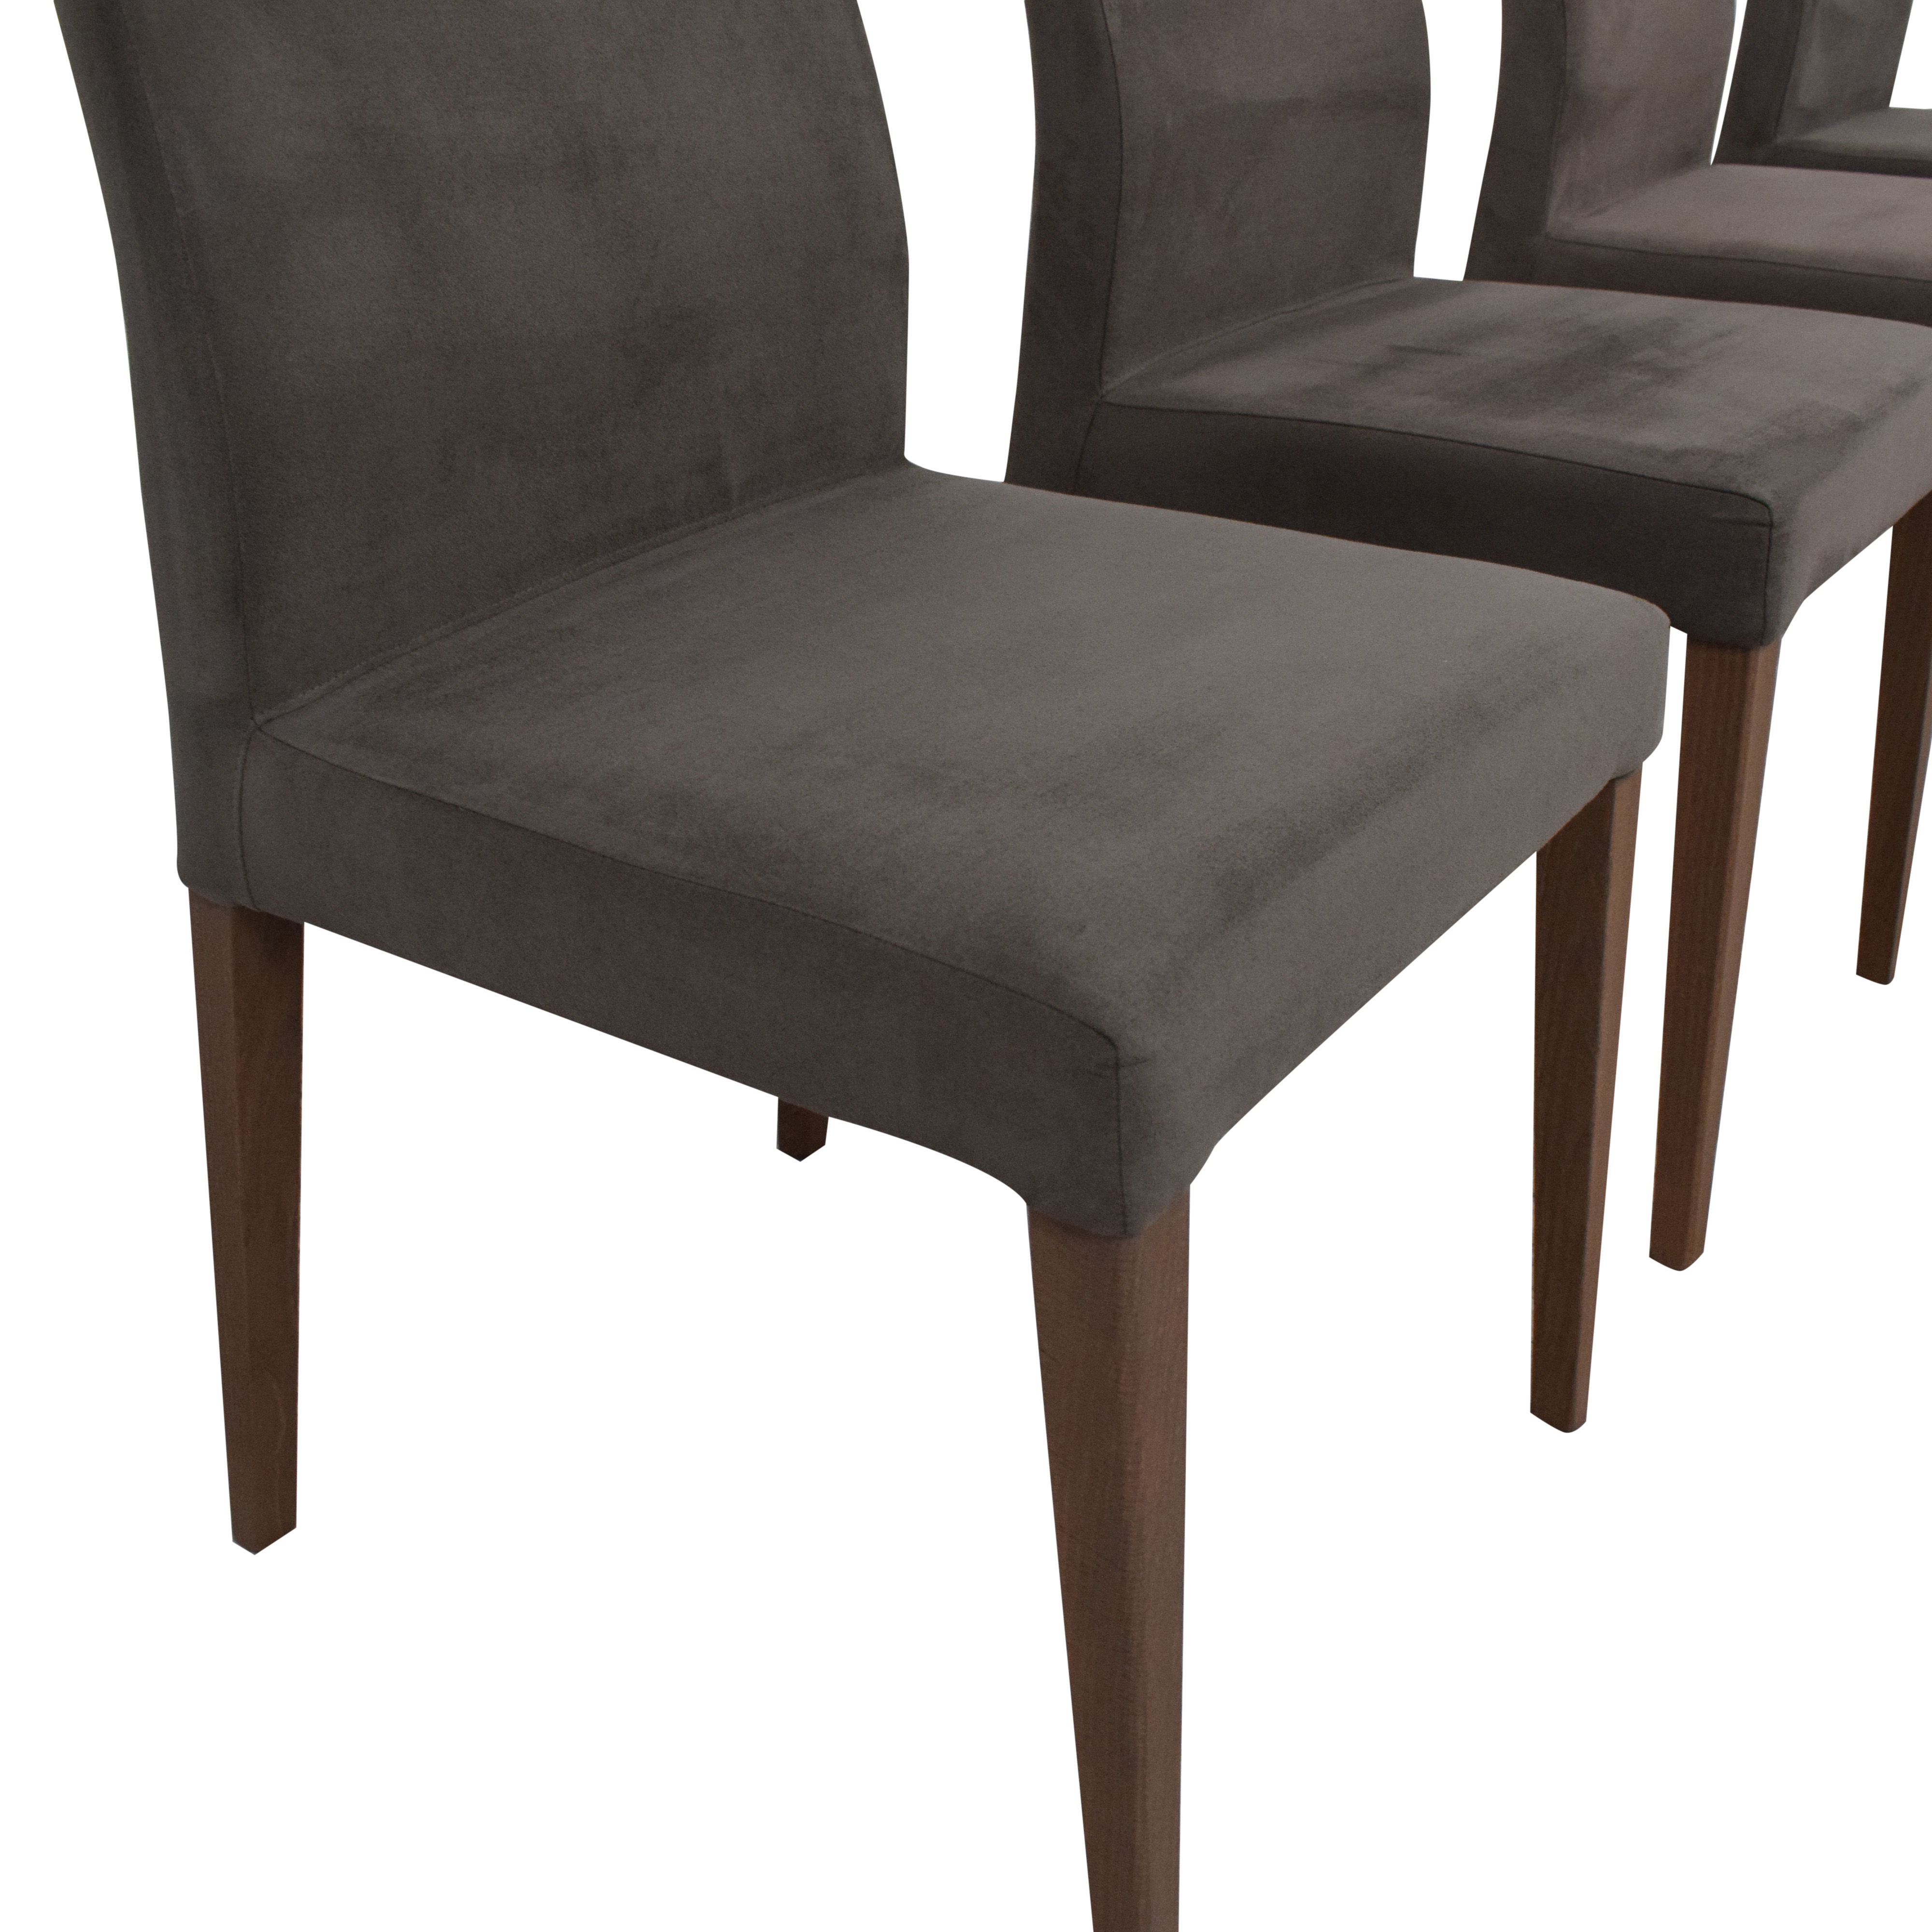 Crate & Barrel Crate & Barrel Lowe Upholstered Dining Chairs ma